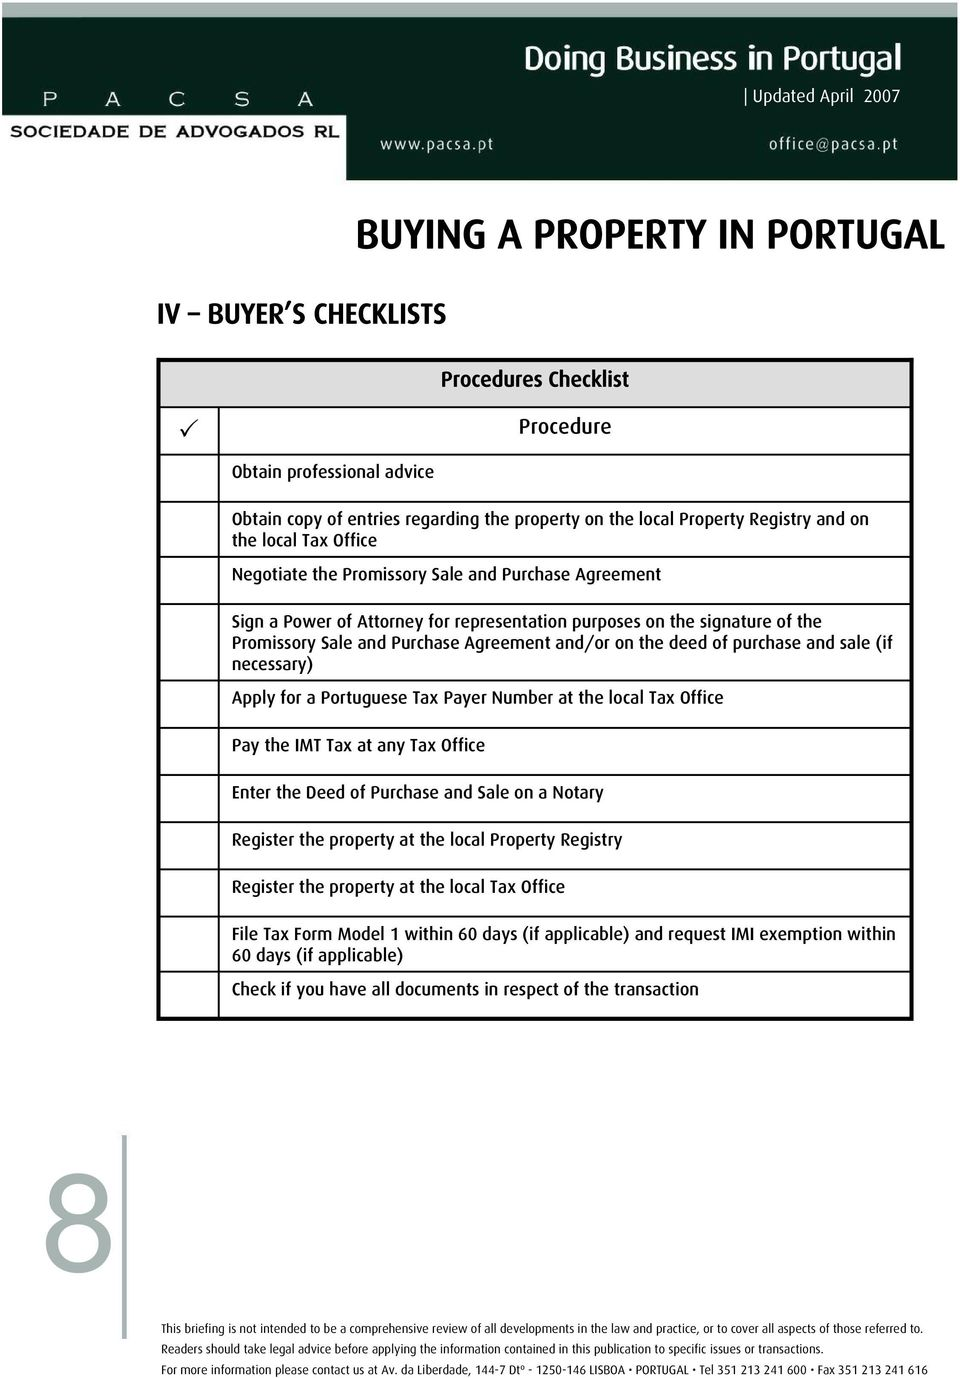 necessary) Apply for a Portuguese Tax Payer Number at the local Tax Office Pay the IMT Tax at any Tax Office Enter the Deed of Purchase and Sale on a Notary Register the property at the local